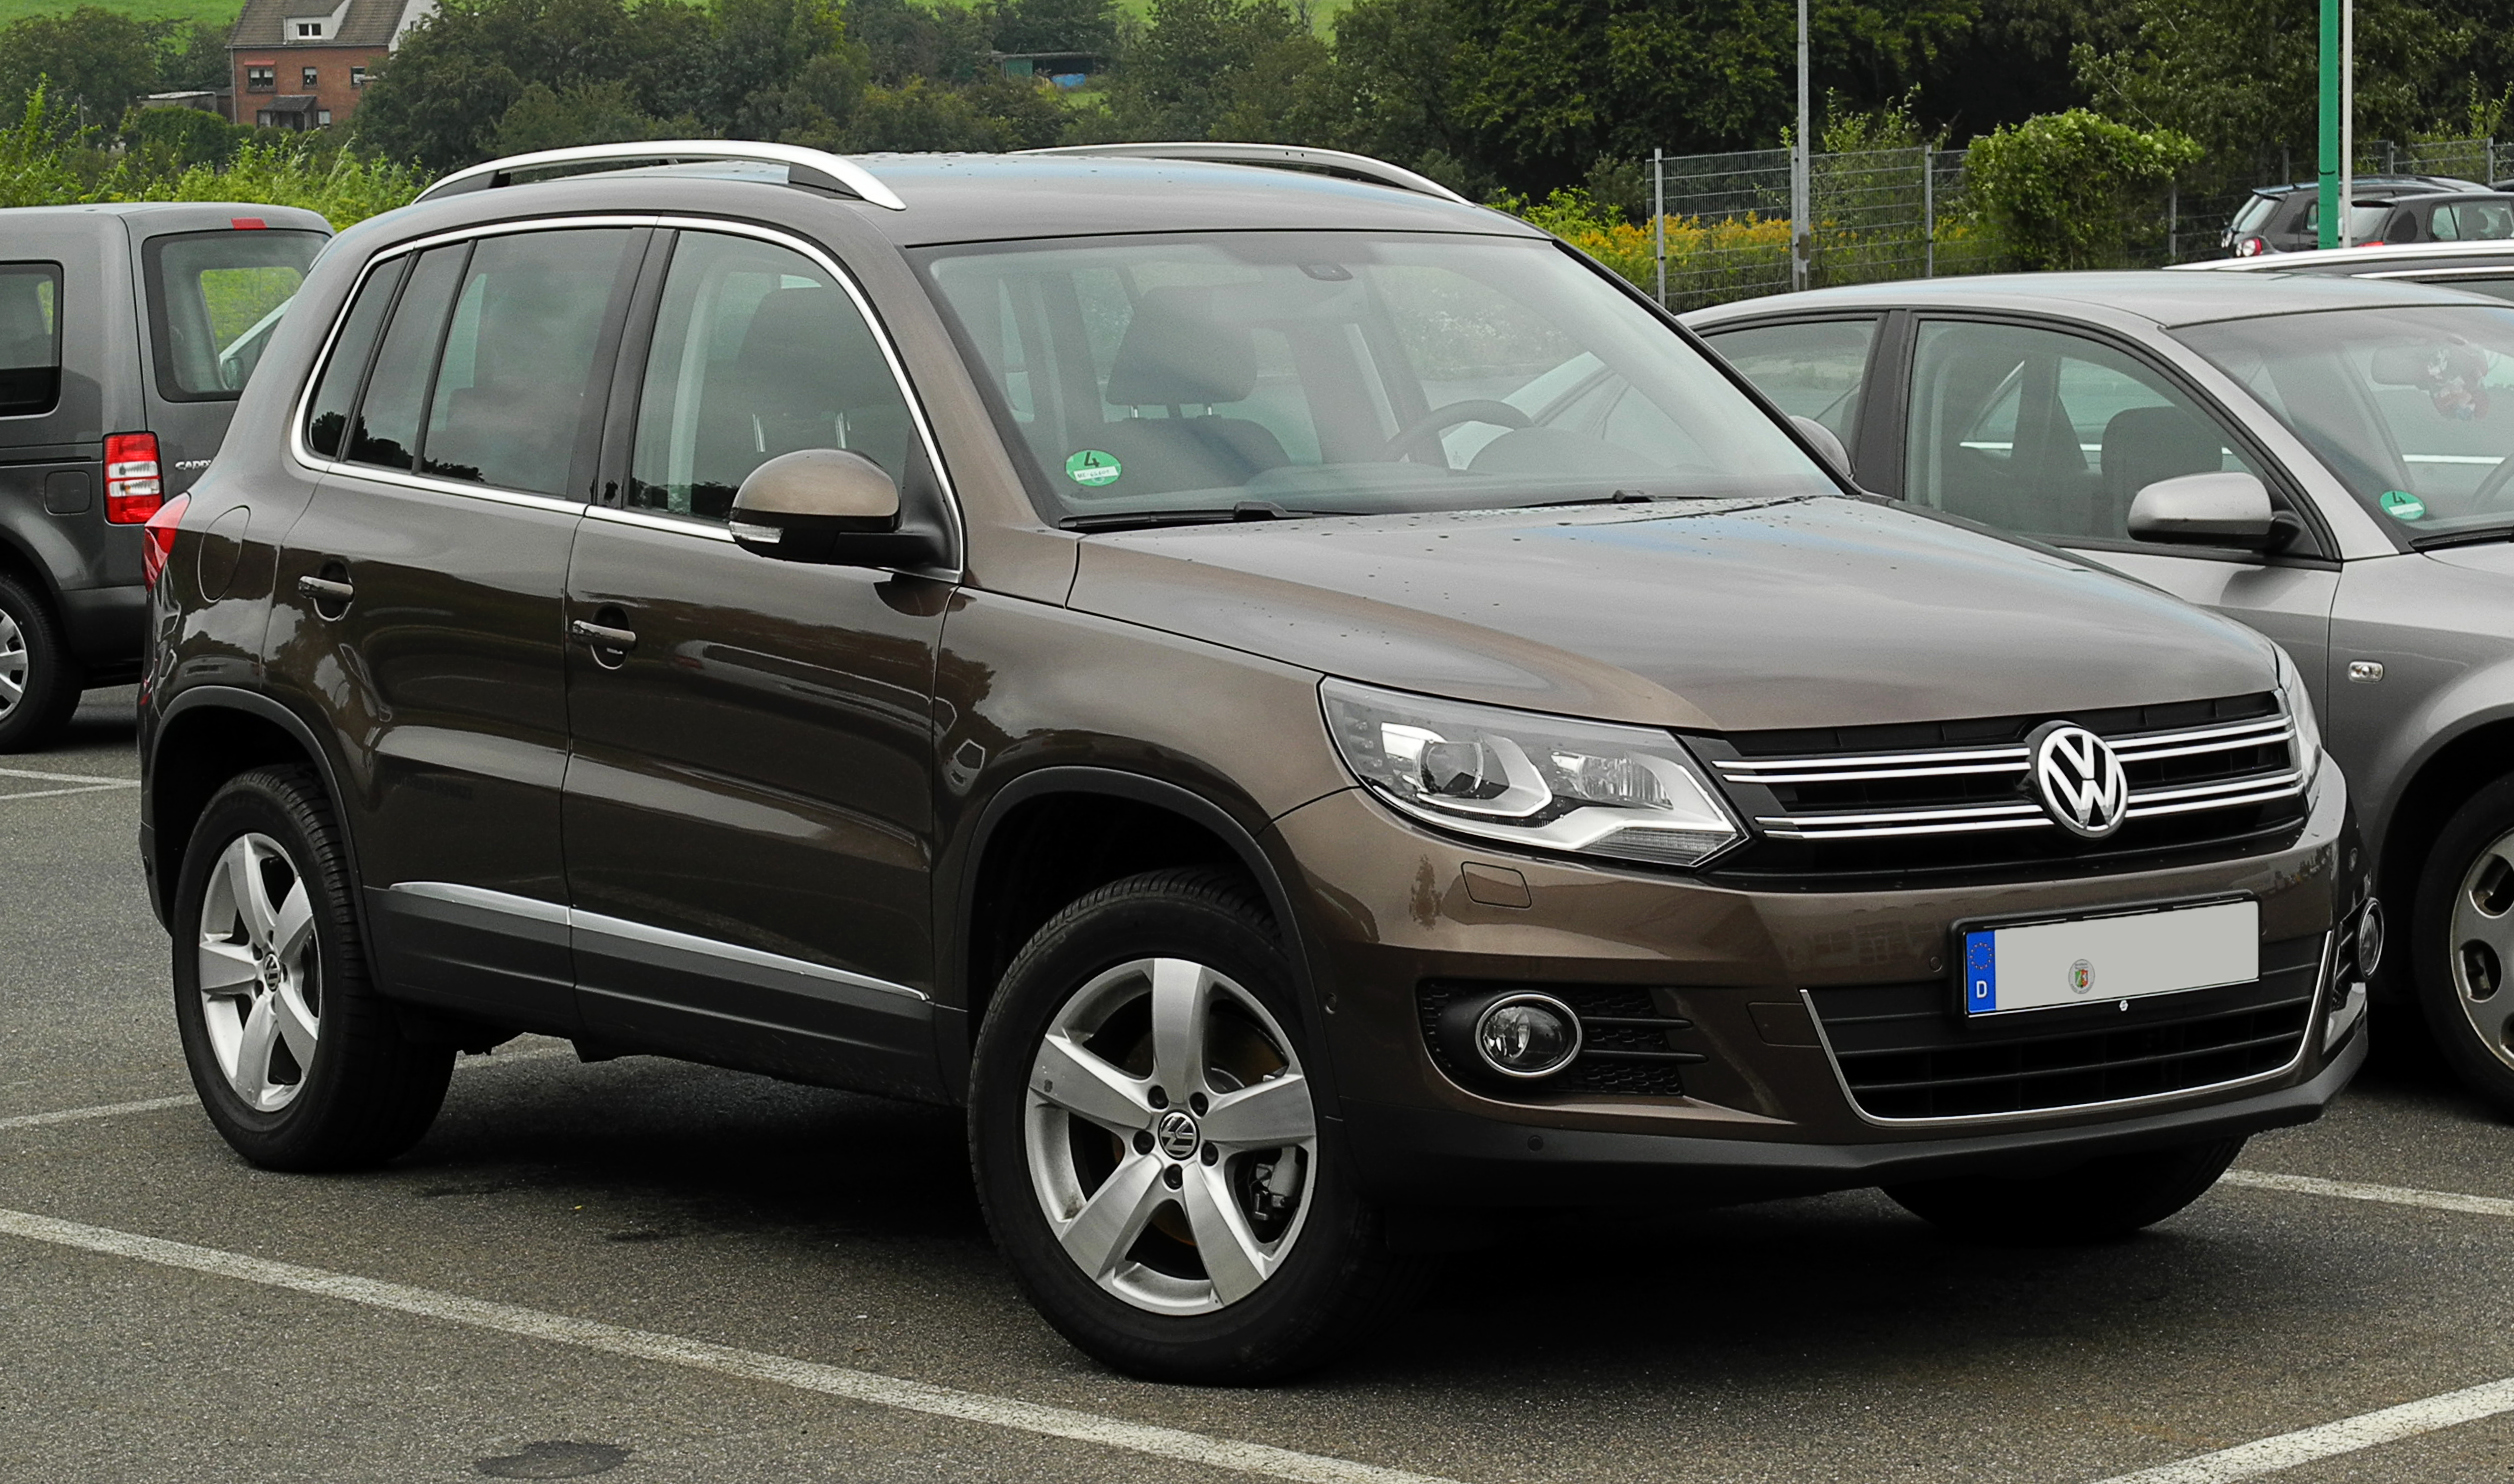 VW Tiguan in brown